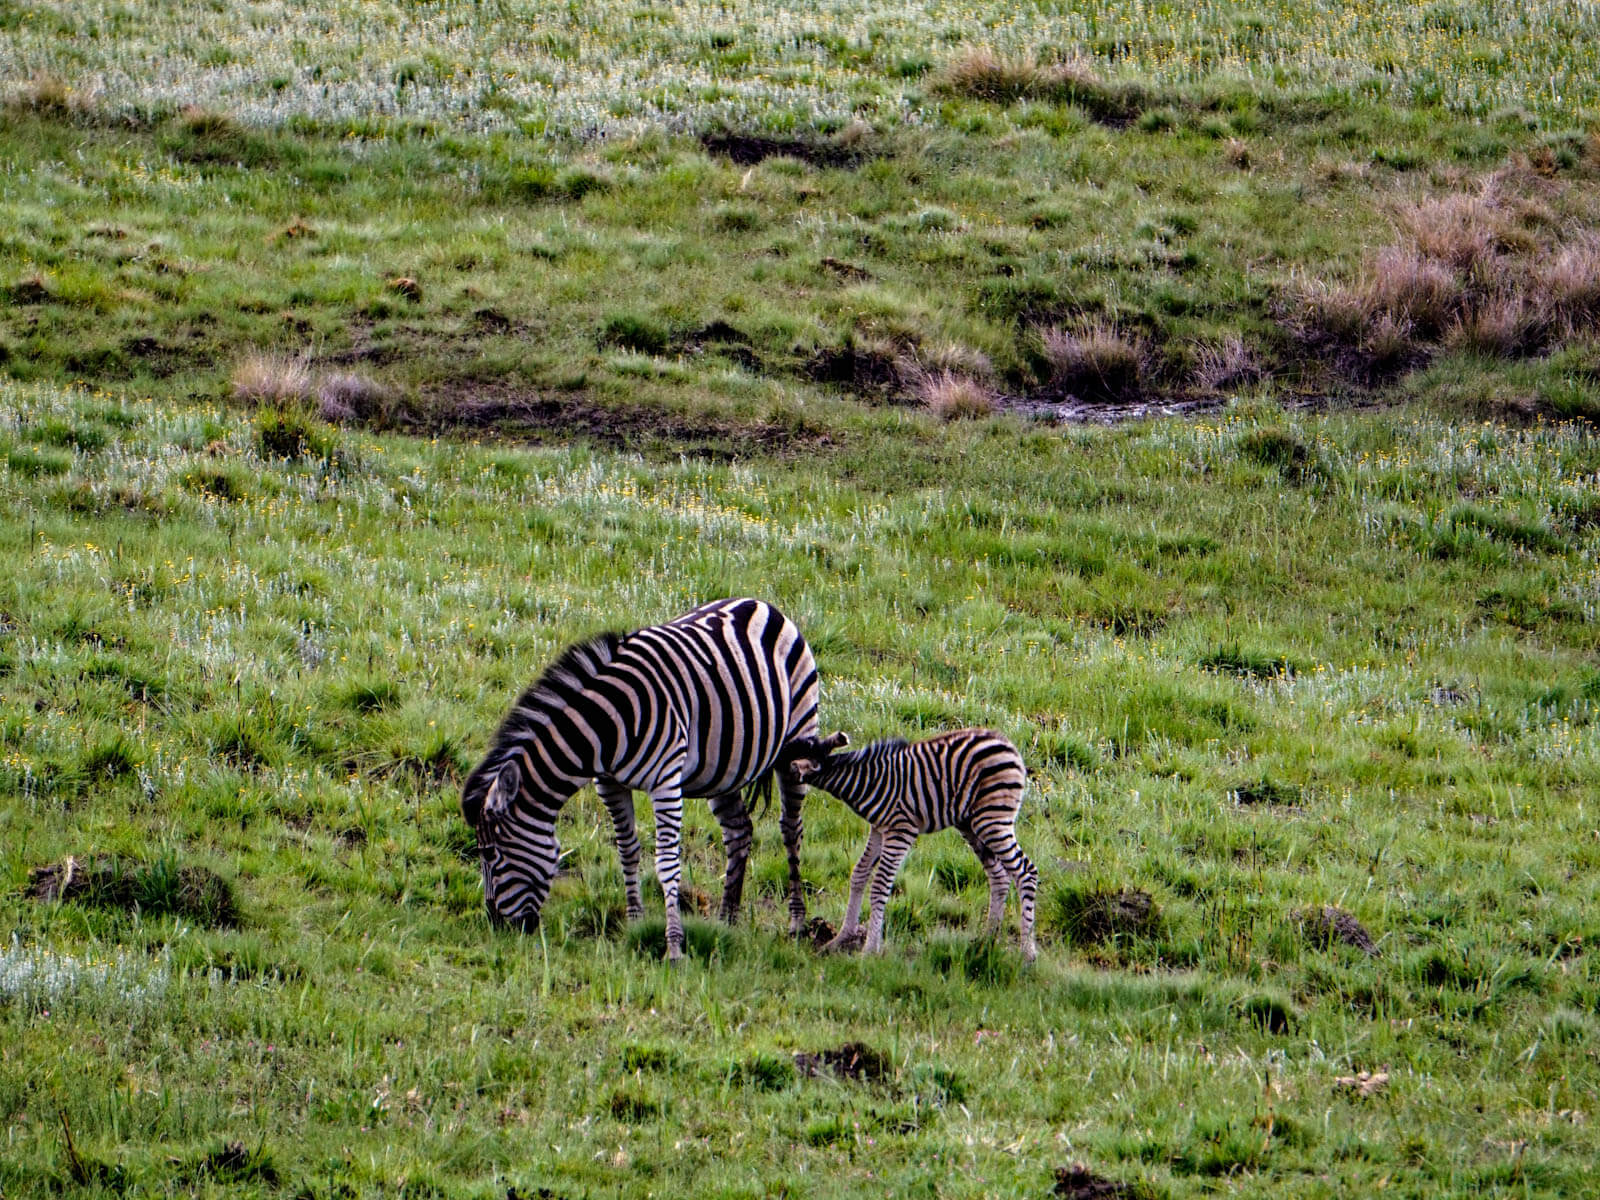 Zebras im Golden Gate Highlands National Park